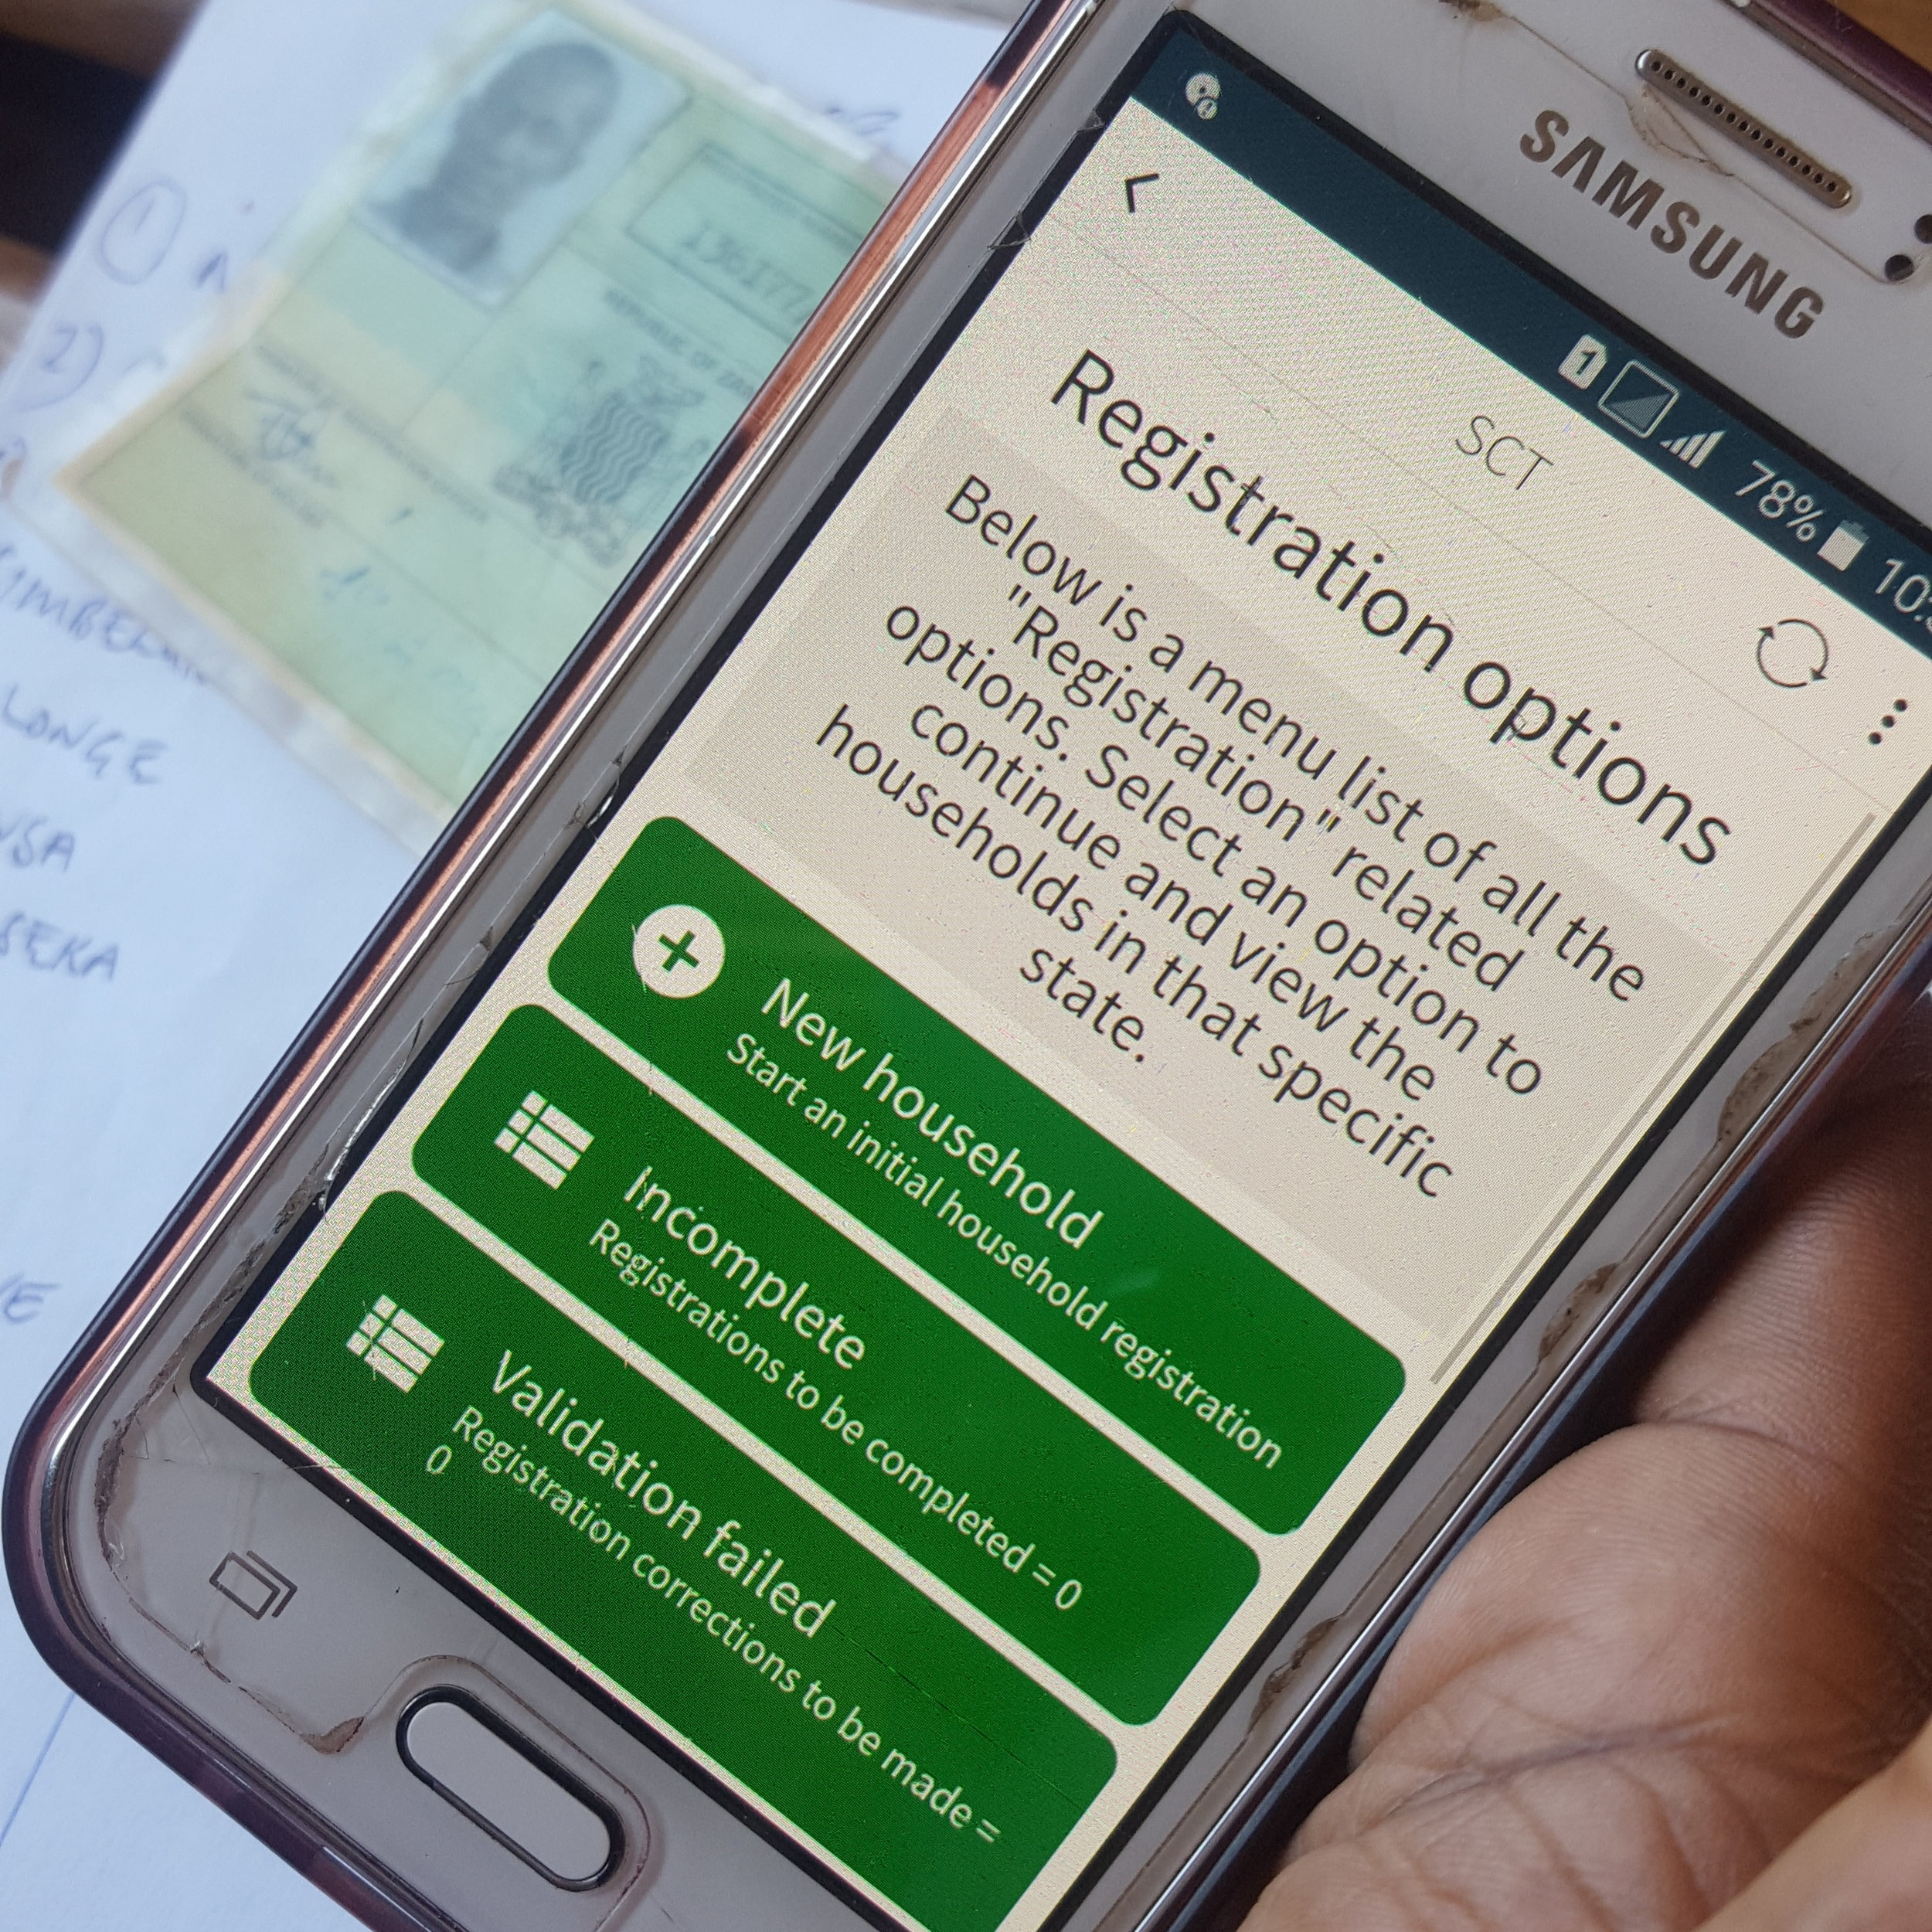 Household Census - Potential social grant beneficiaries are registered, screened and identified using this mobile application. District Social Welfare Management then validate the data using an online web portal. The process is completely digital and scraps the inefficiencies of previously adopted paper based solutions.